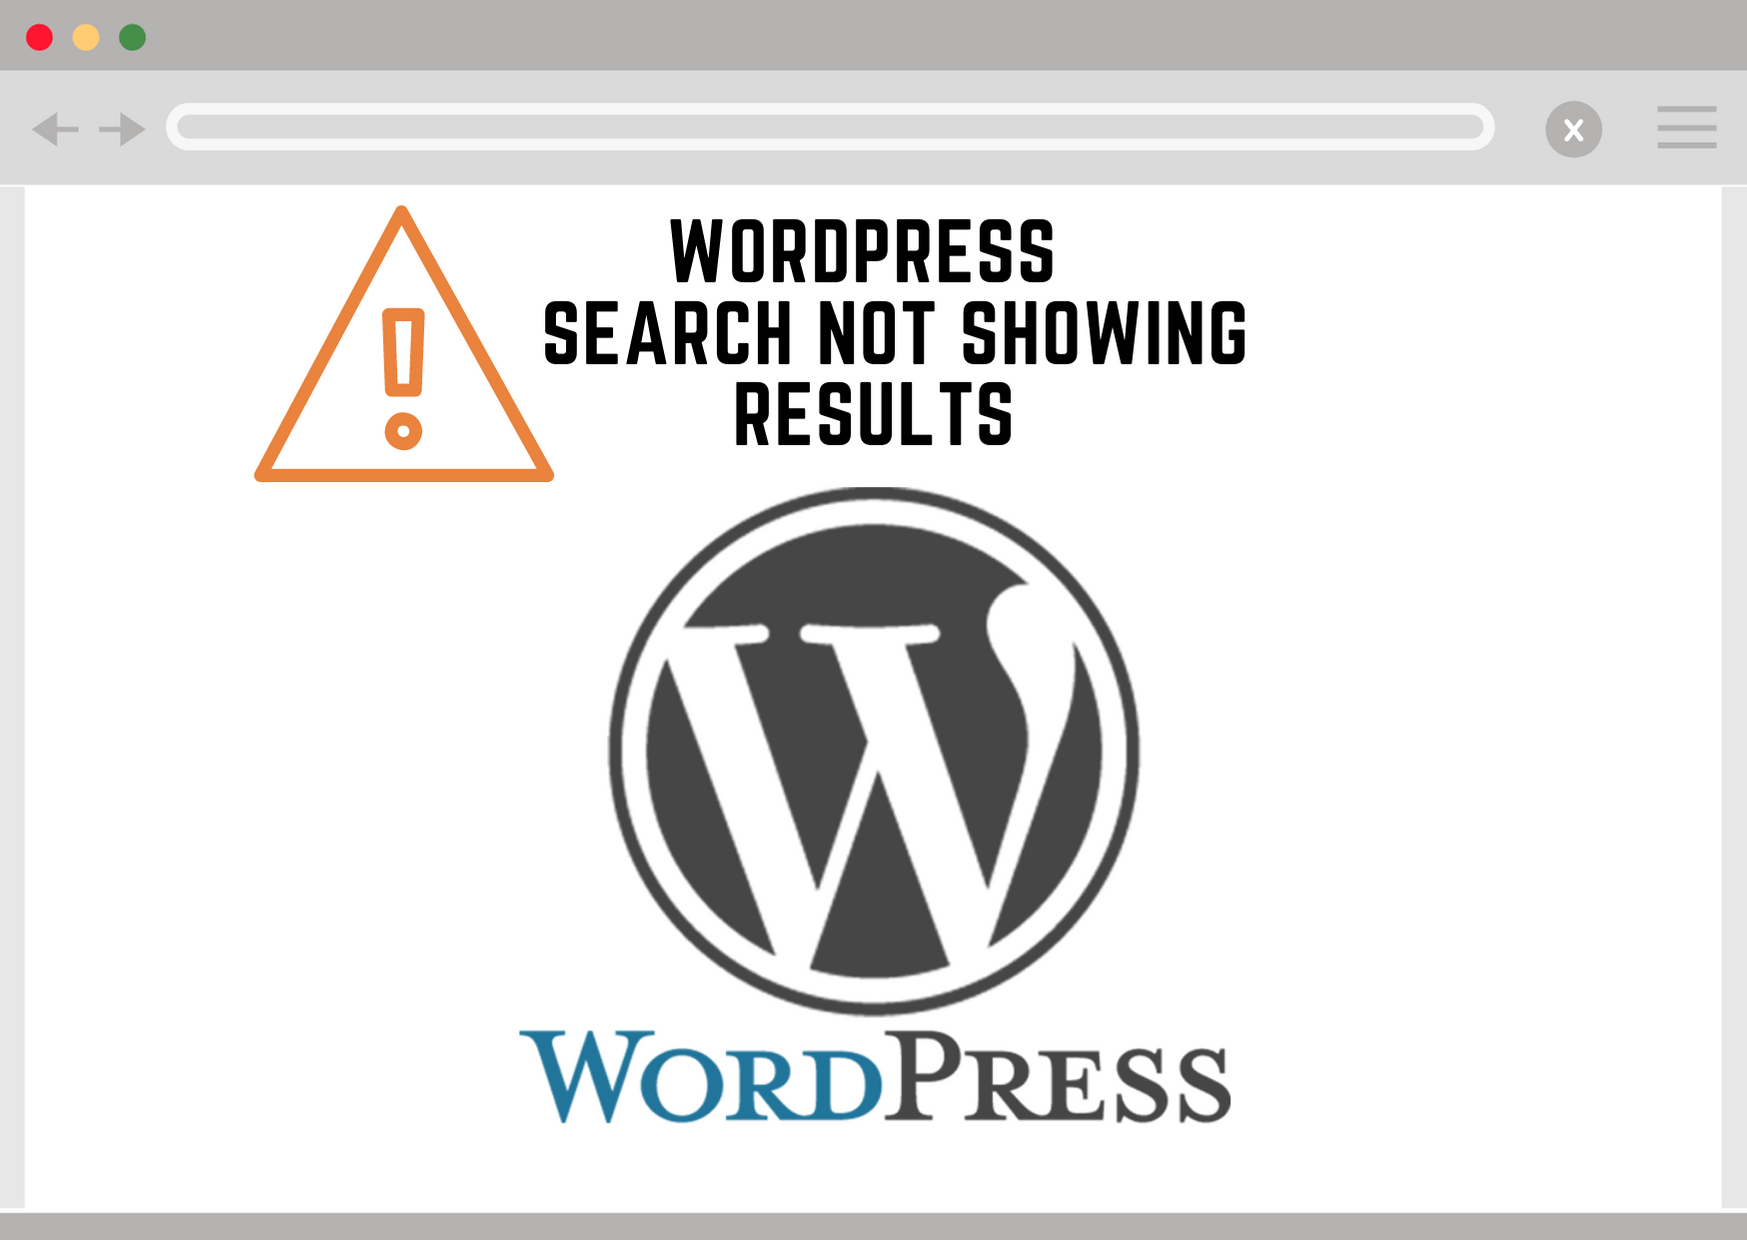 Wordpress Search Not Showing Results